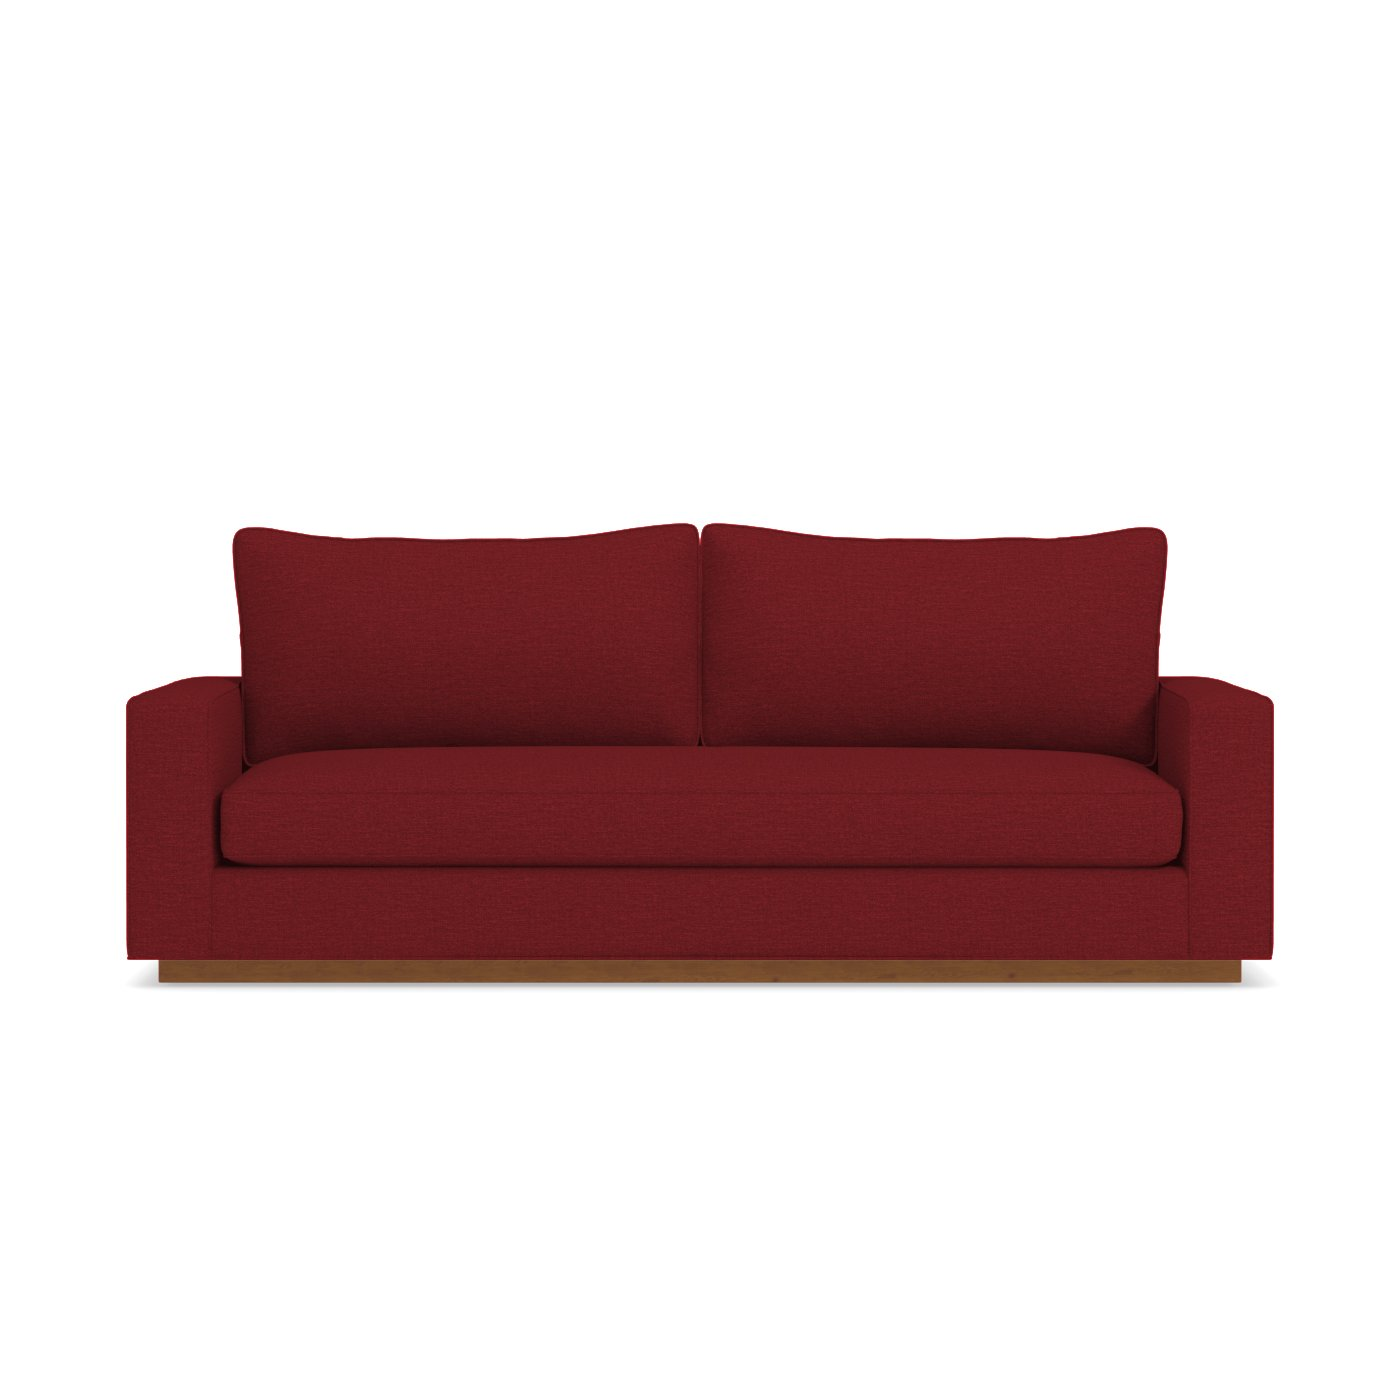 Harper Natural Wood Sofa Choice of Fabrics Apt2B